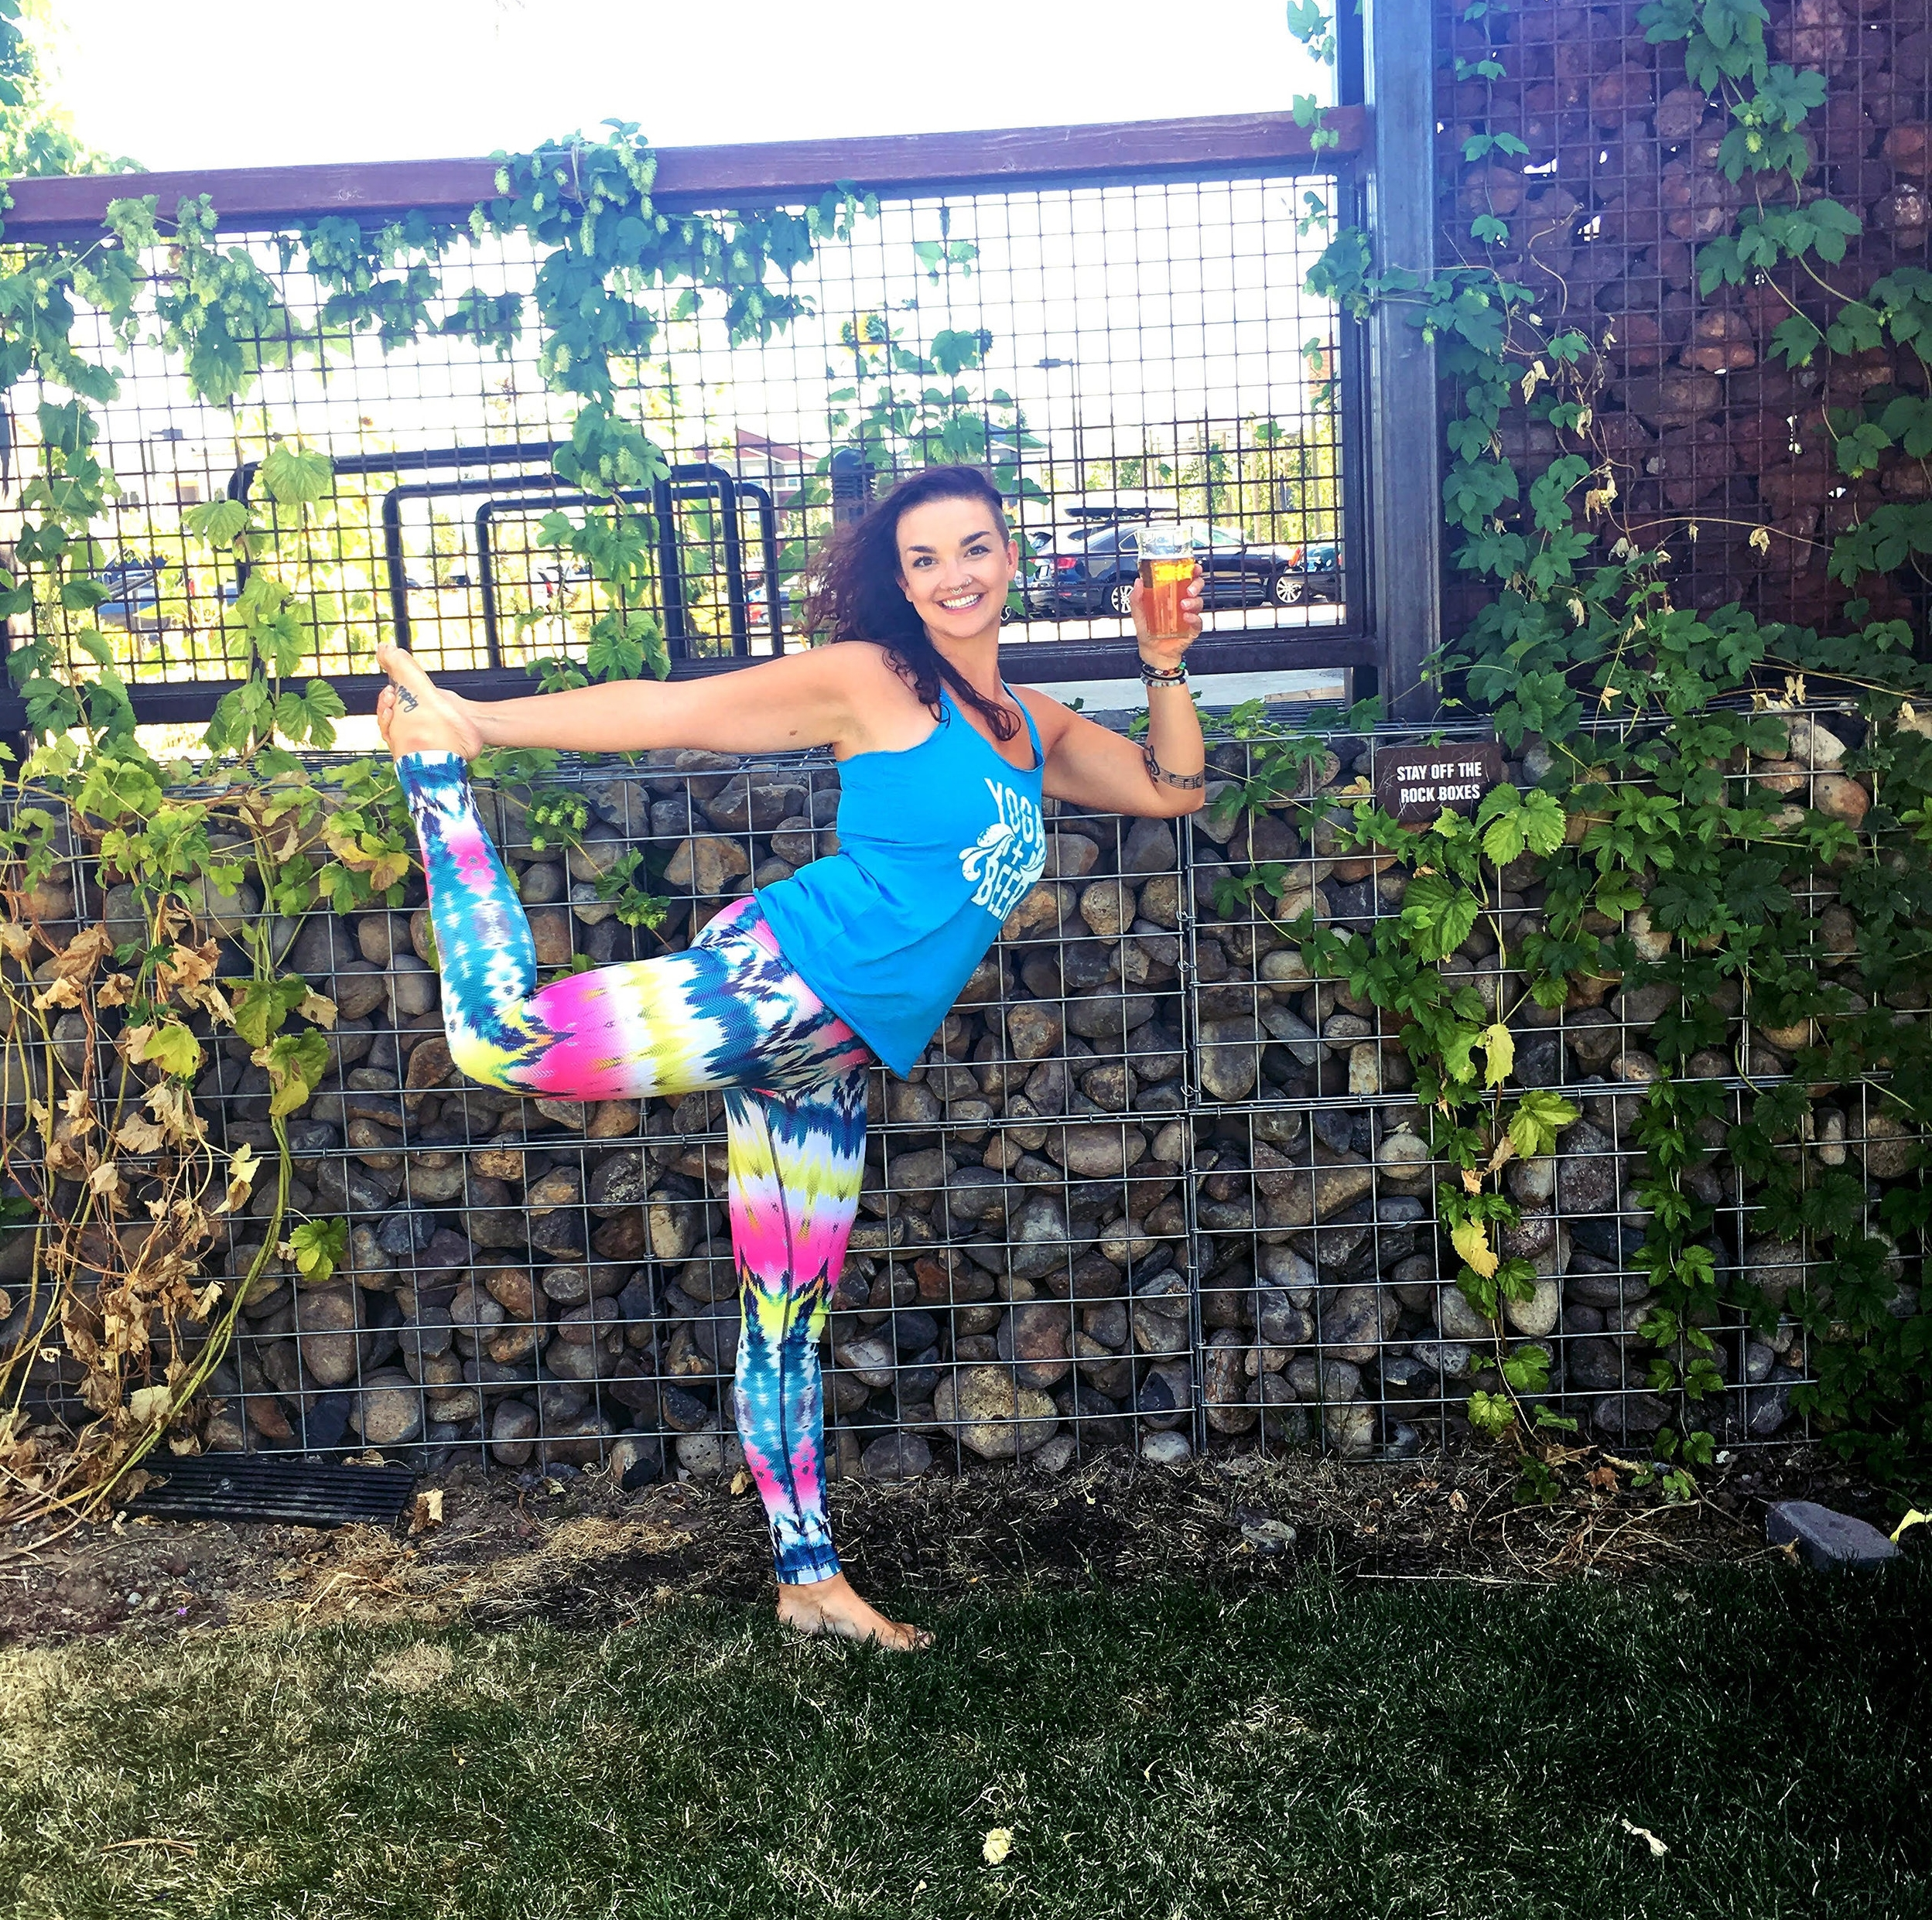 Seville Strickler Yoga. yOGA + bEER. YOGA CLASSES IN OREGON and washington BREWERIES. ALL LEVELS YOGA CLASSES IN SALEM, PORTLAND, ALBANY, SILVERTON, newport, tualatin, woodinville and vancouver.